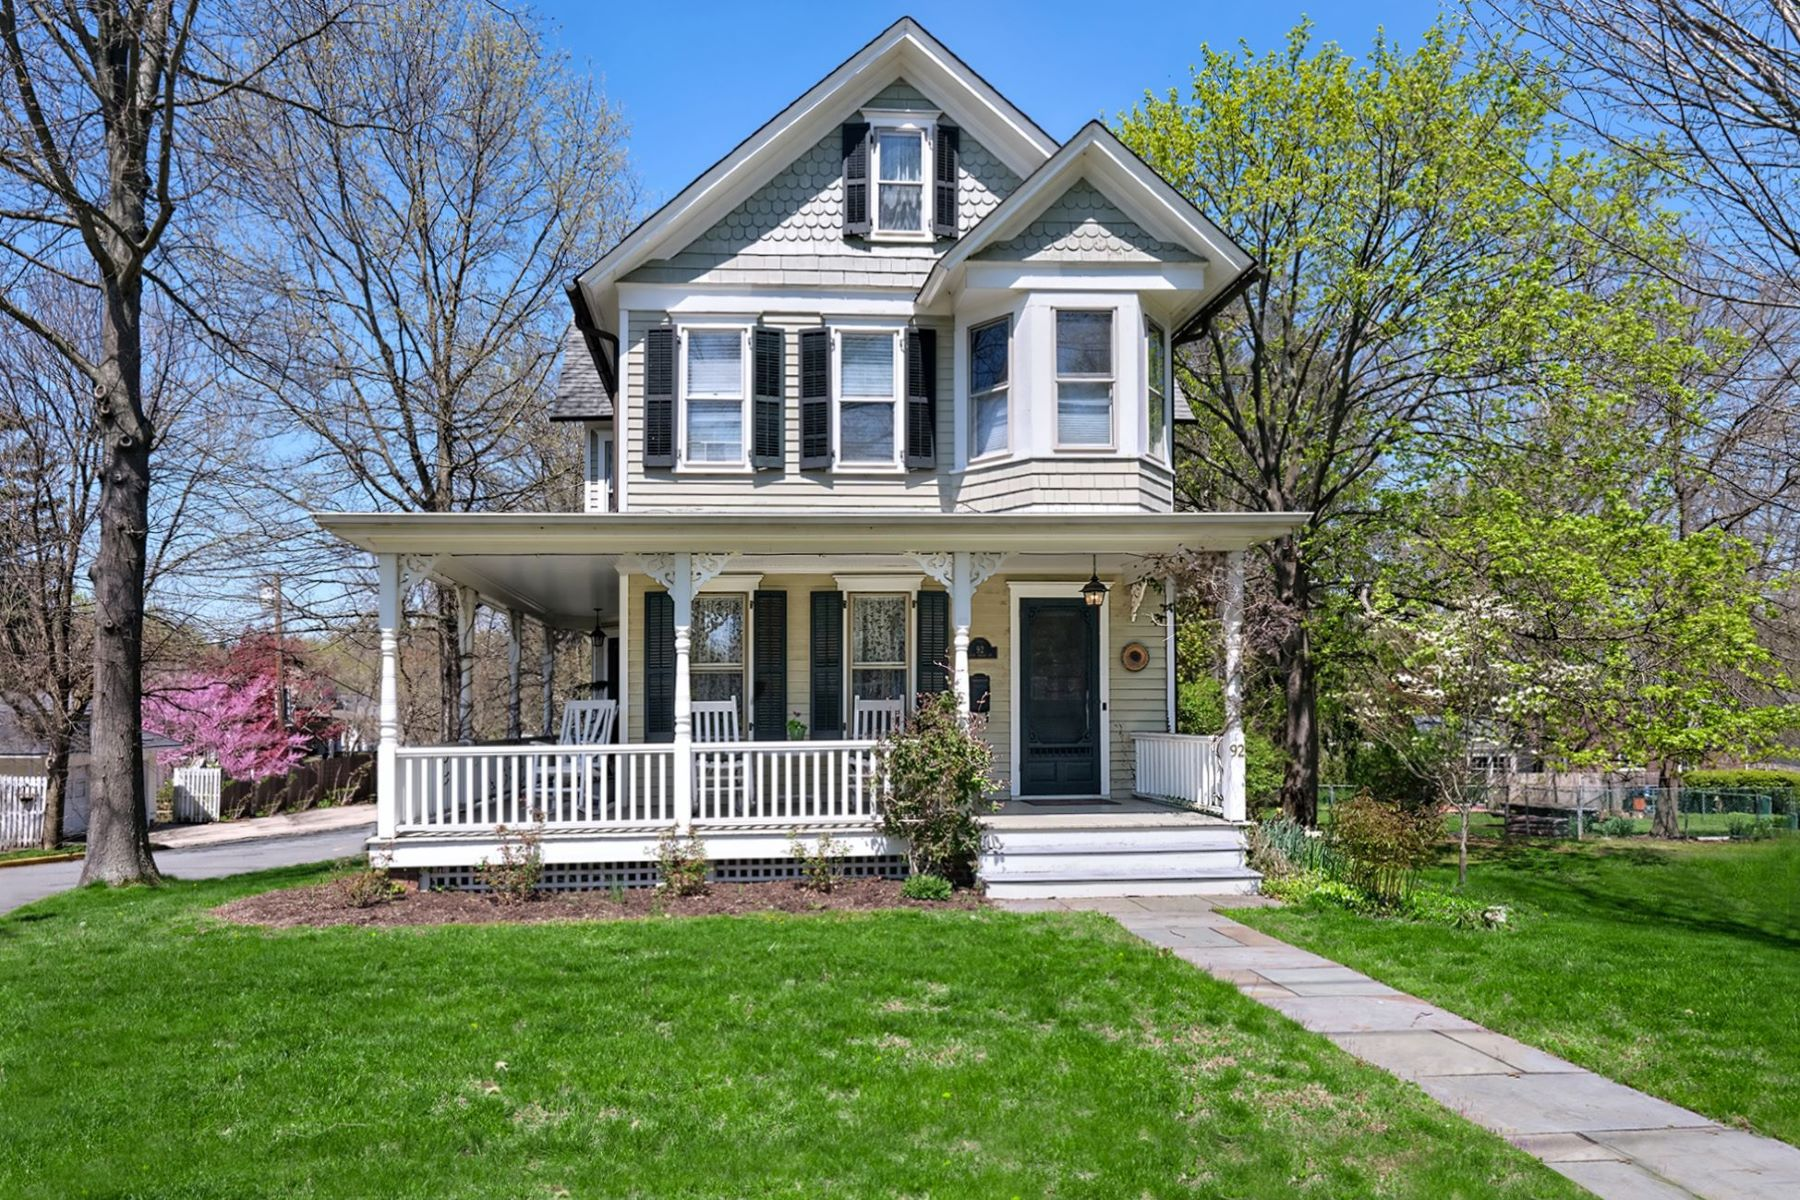 Single Family Homes for Sale at Charming Victorian 92 West Broad Street, Hopewell, New Jersey 08525 United States